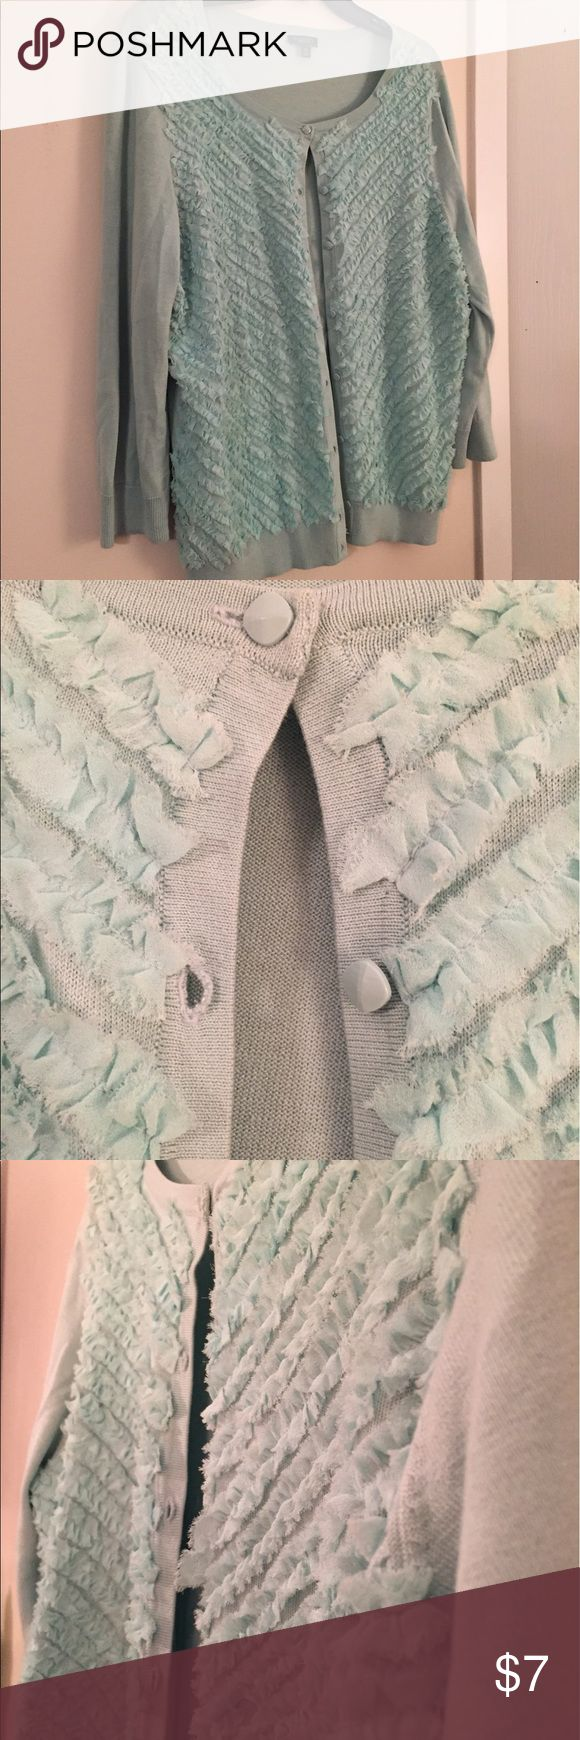 Talbots teal cardigan with ruffle Cute NWOT Talbots cardigan teal/baby blue with velvety ruffles on front Talbots Sweaters Cardigans